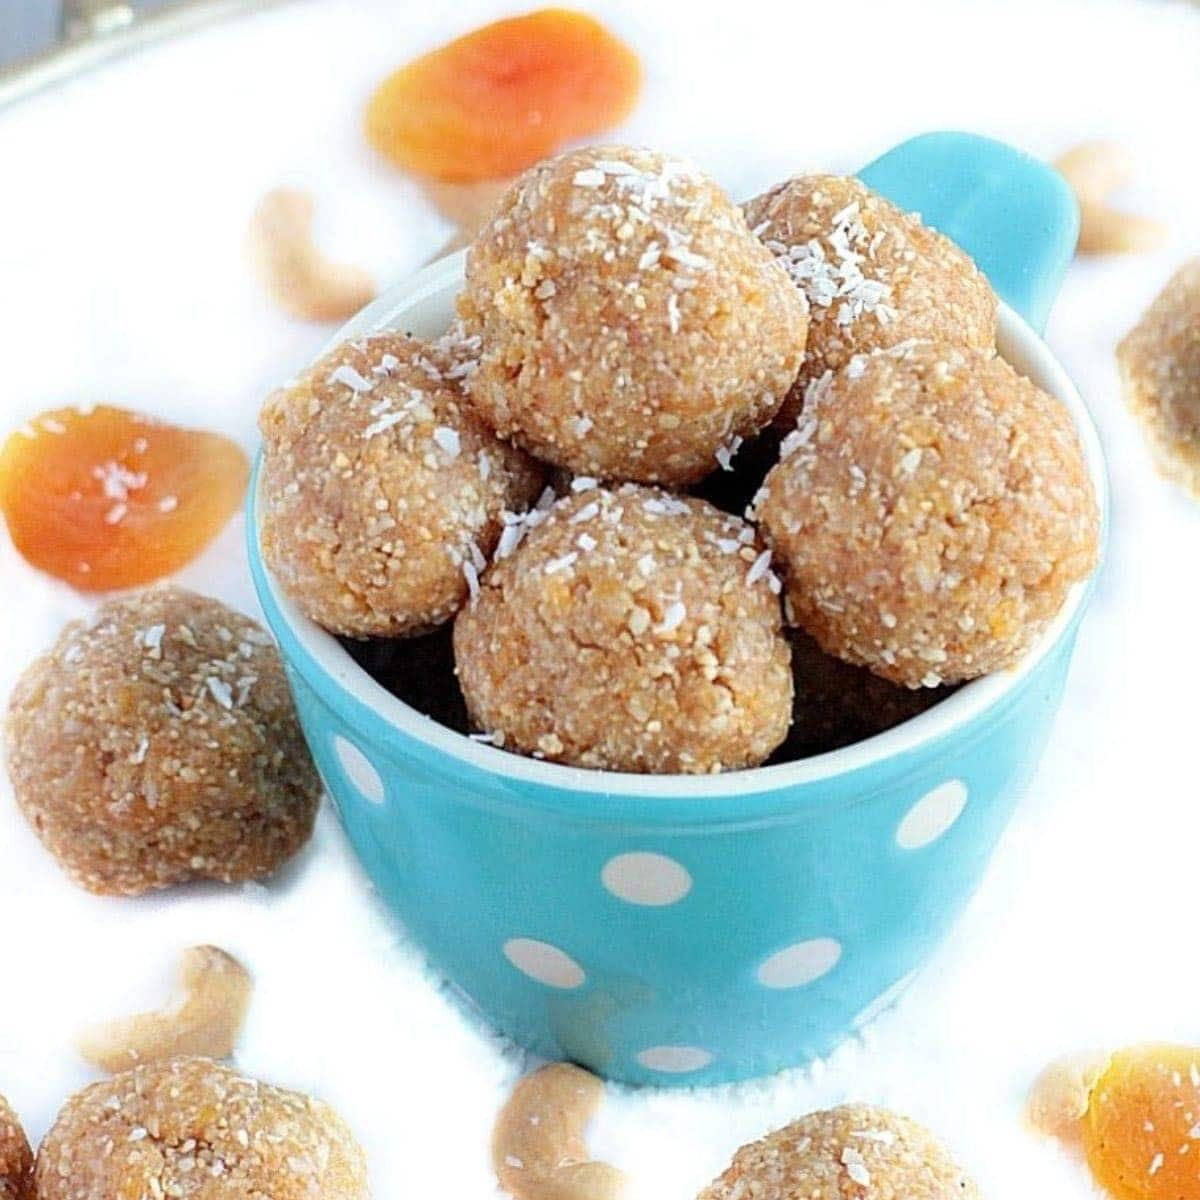 Blue bowl with polkadots filled with apricot energy bites.